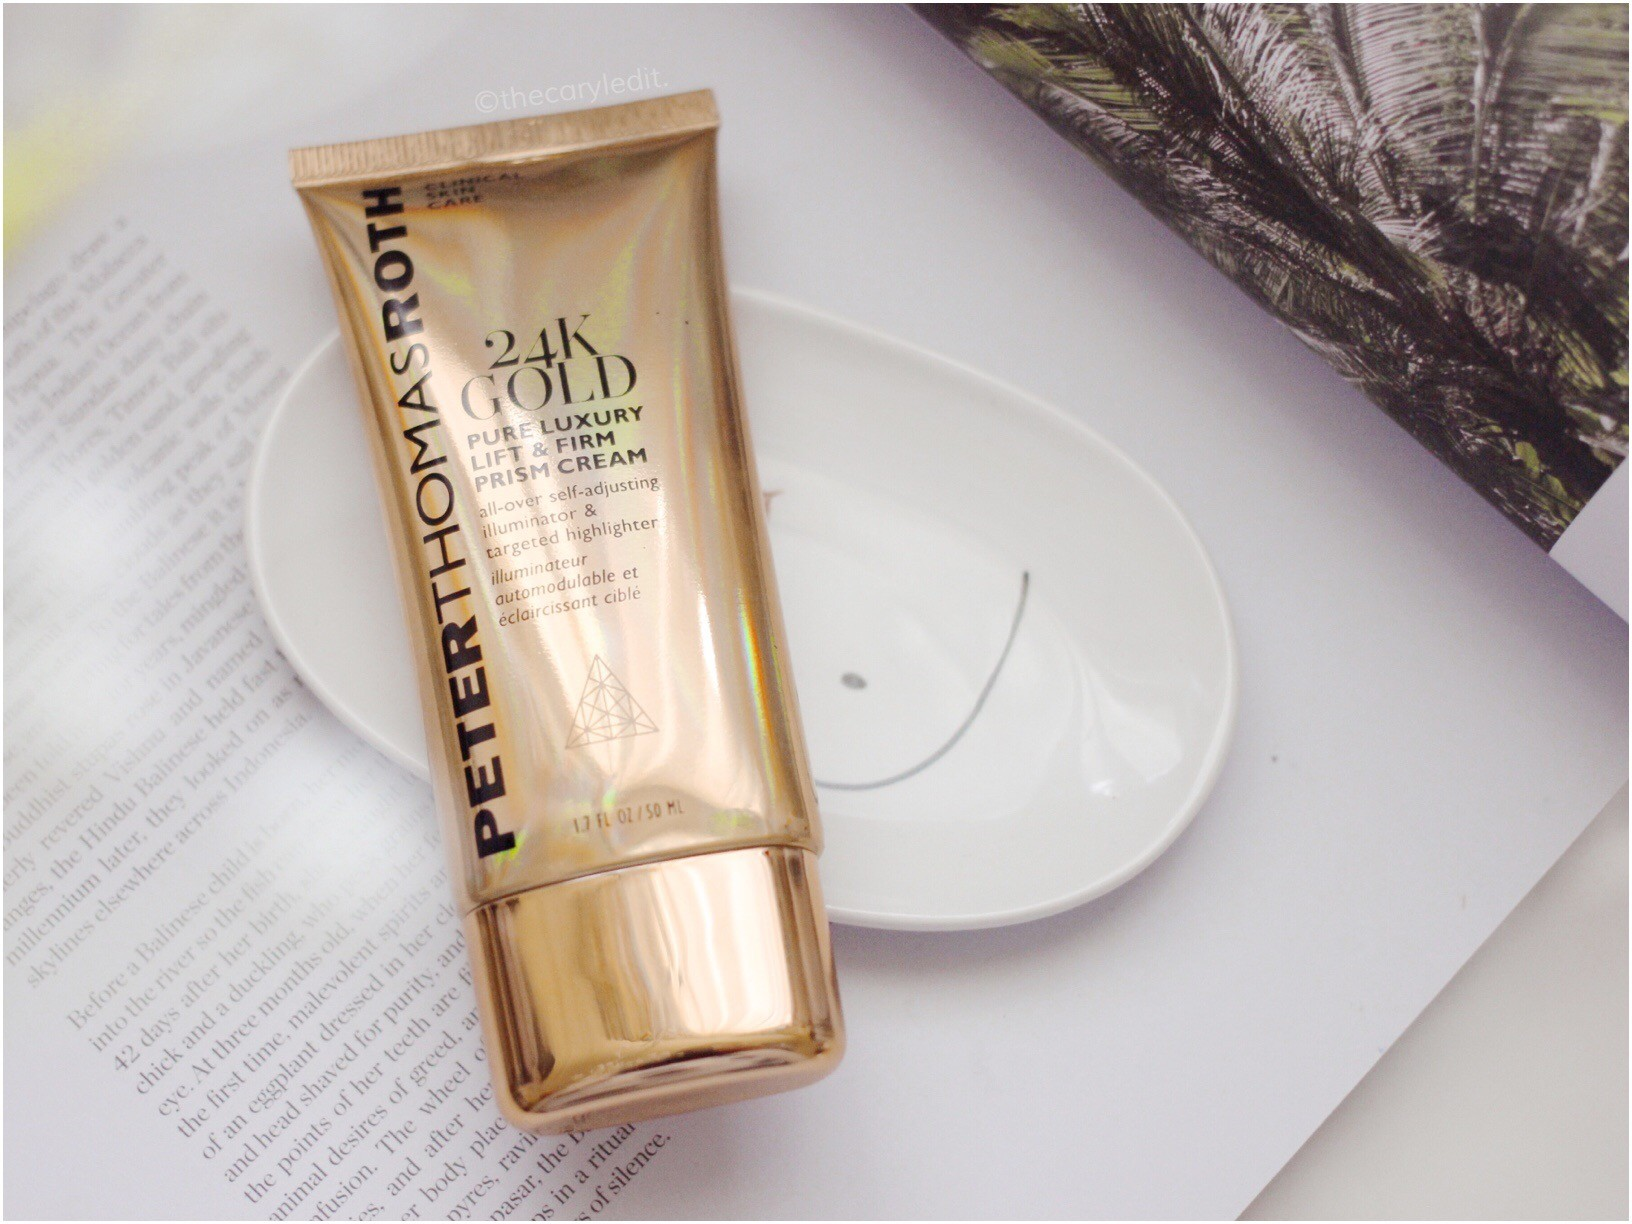 PETER THOMAS ROTH: 24K Gold Pure Luxury Lift & Firm Prism Cream